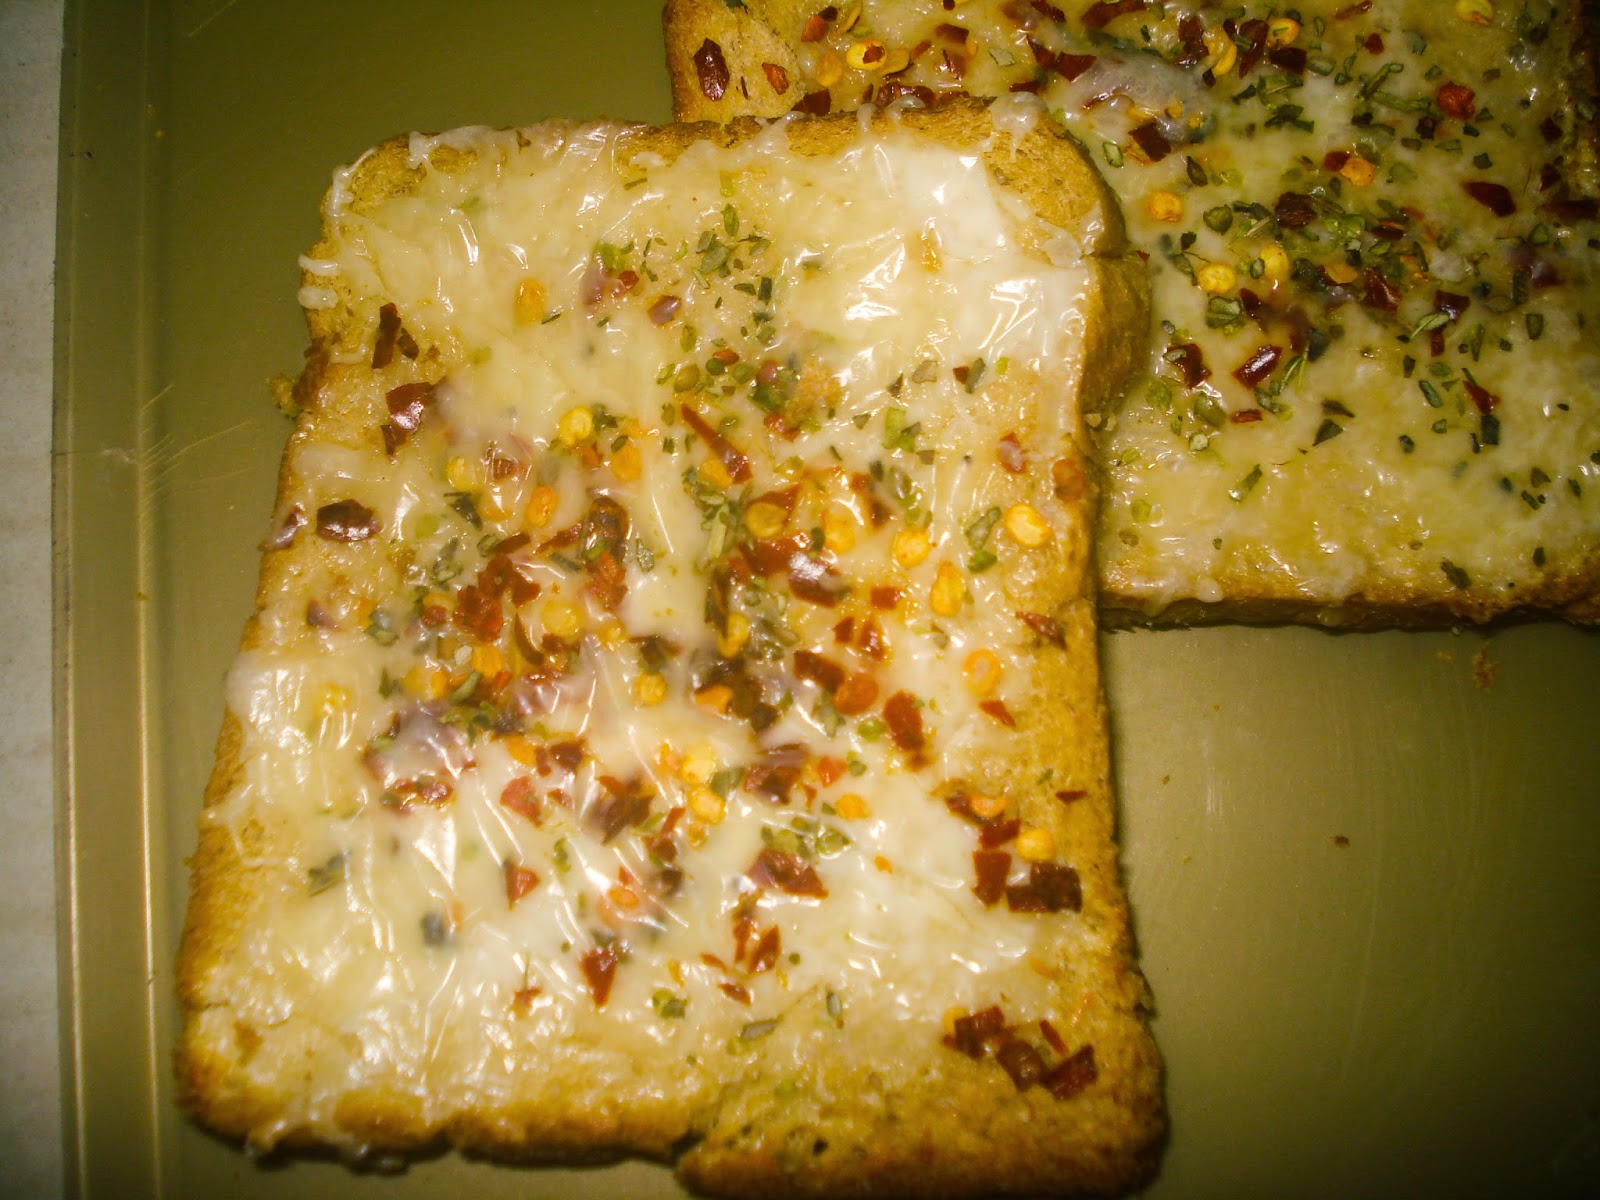 Garlic Chili Cheese Bread is a quick and easy dish. It is one of my ...